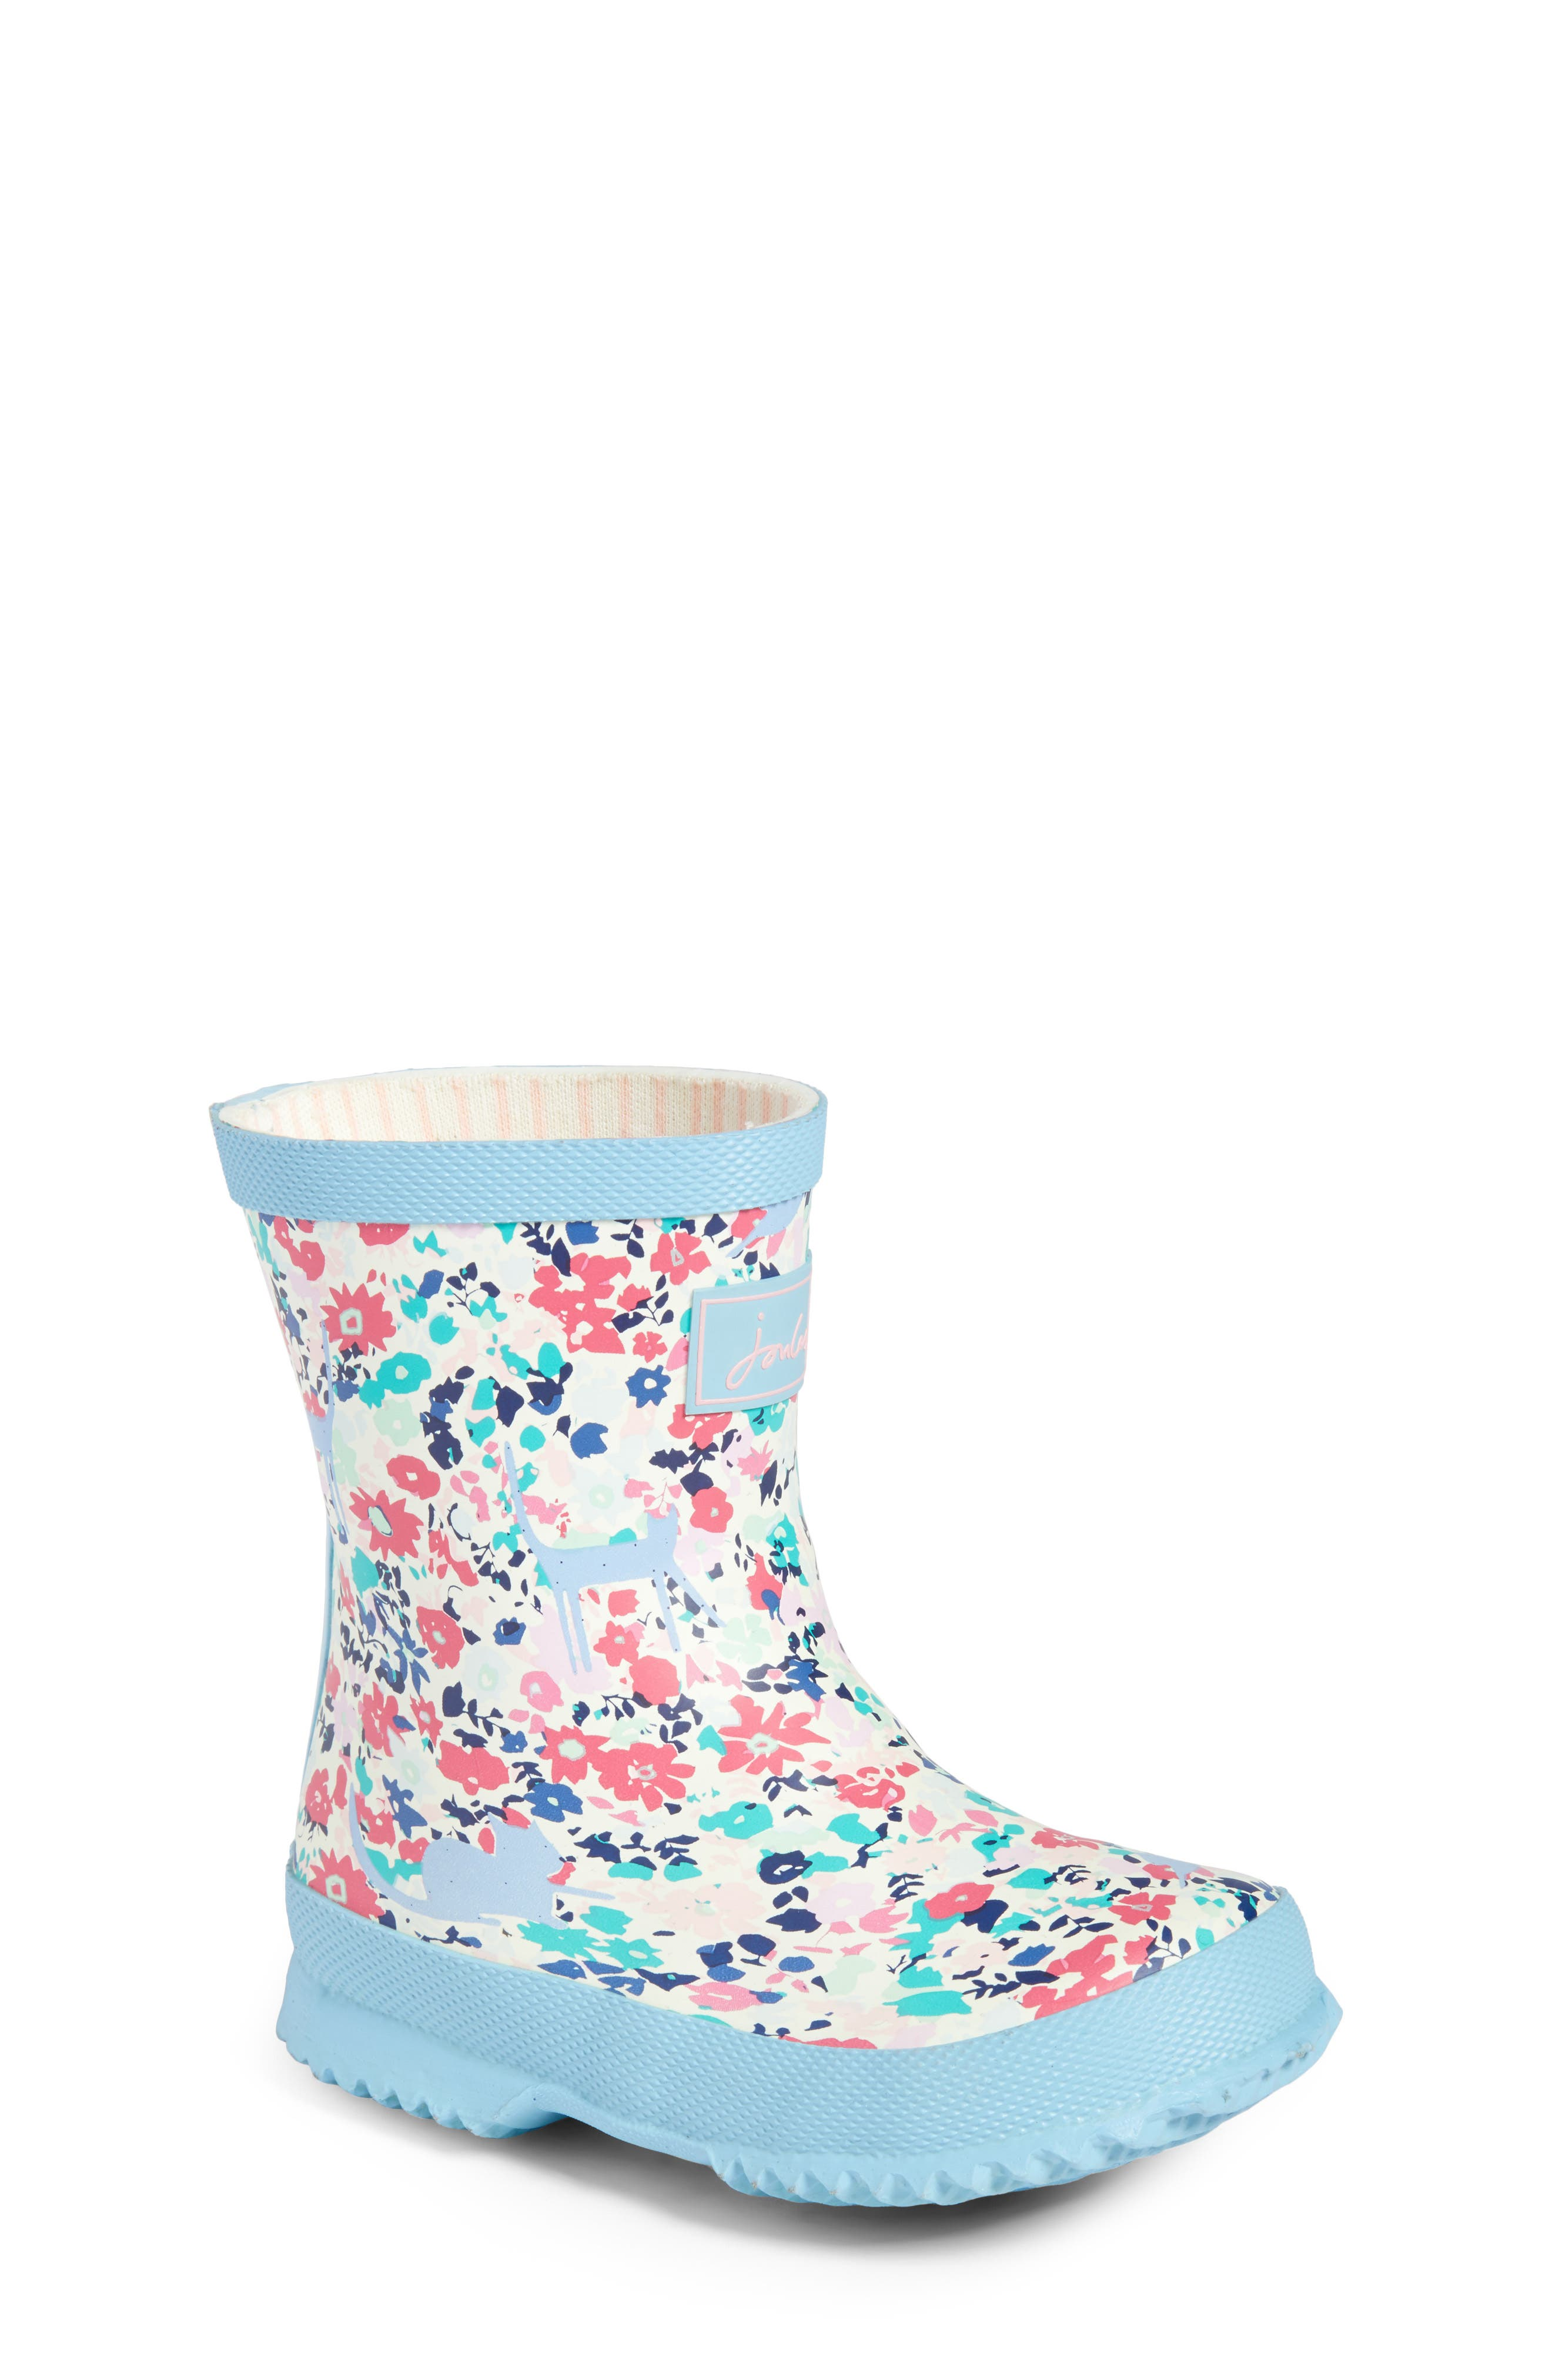 Baby Welly Print Waterproof Boot, Main, color, 406